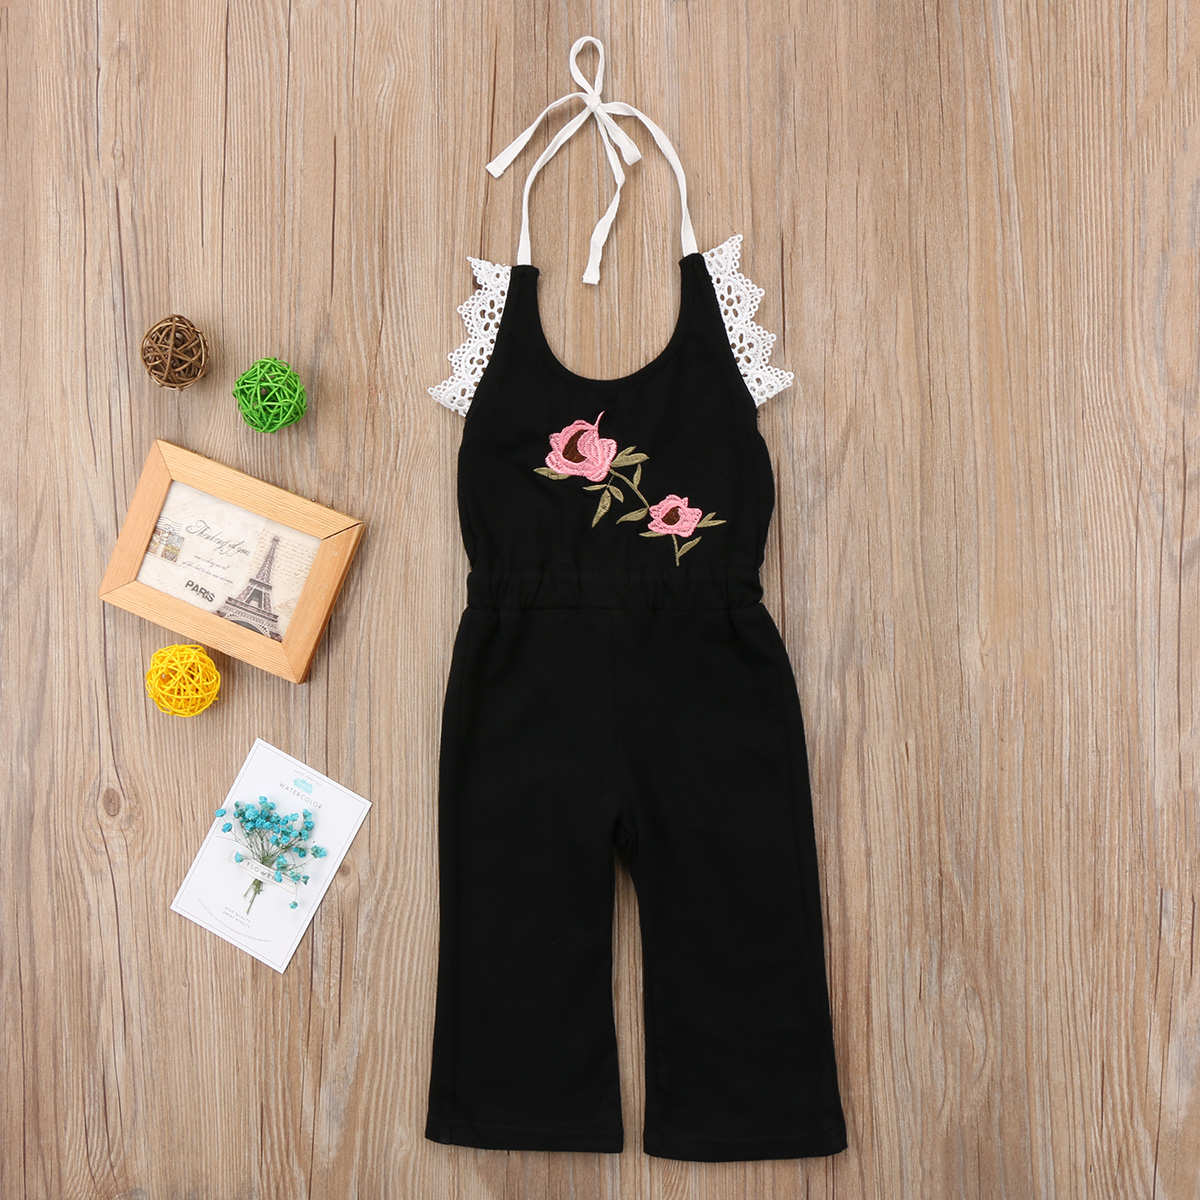 2018 New 1-6Y Toddler Kids Girls Overall Summer Lace Flower Strap Black Romper Jumpsuit Outfit Cute Floral Clothes for Girls